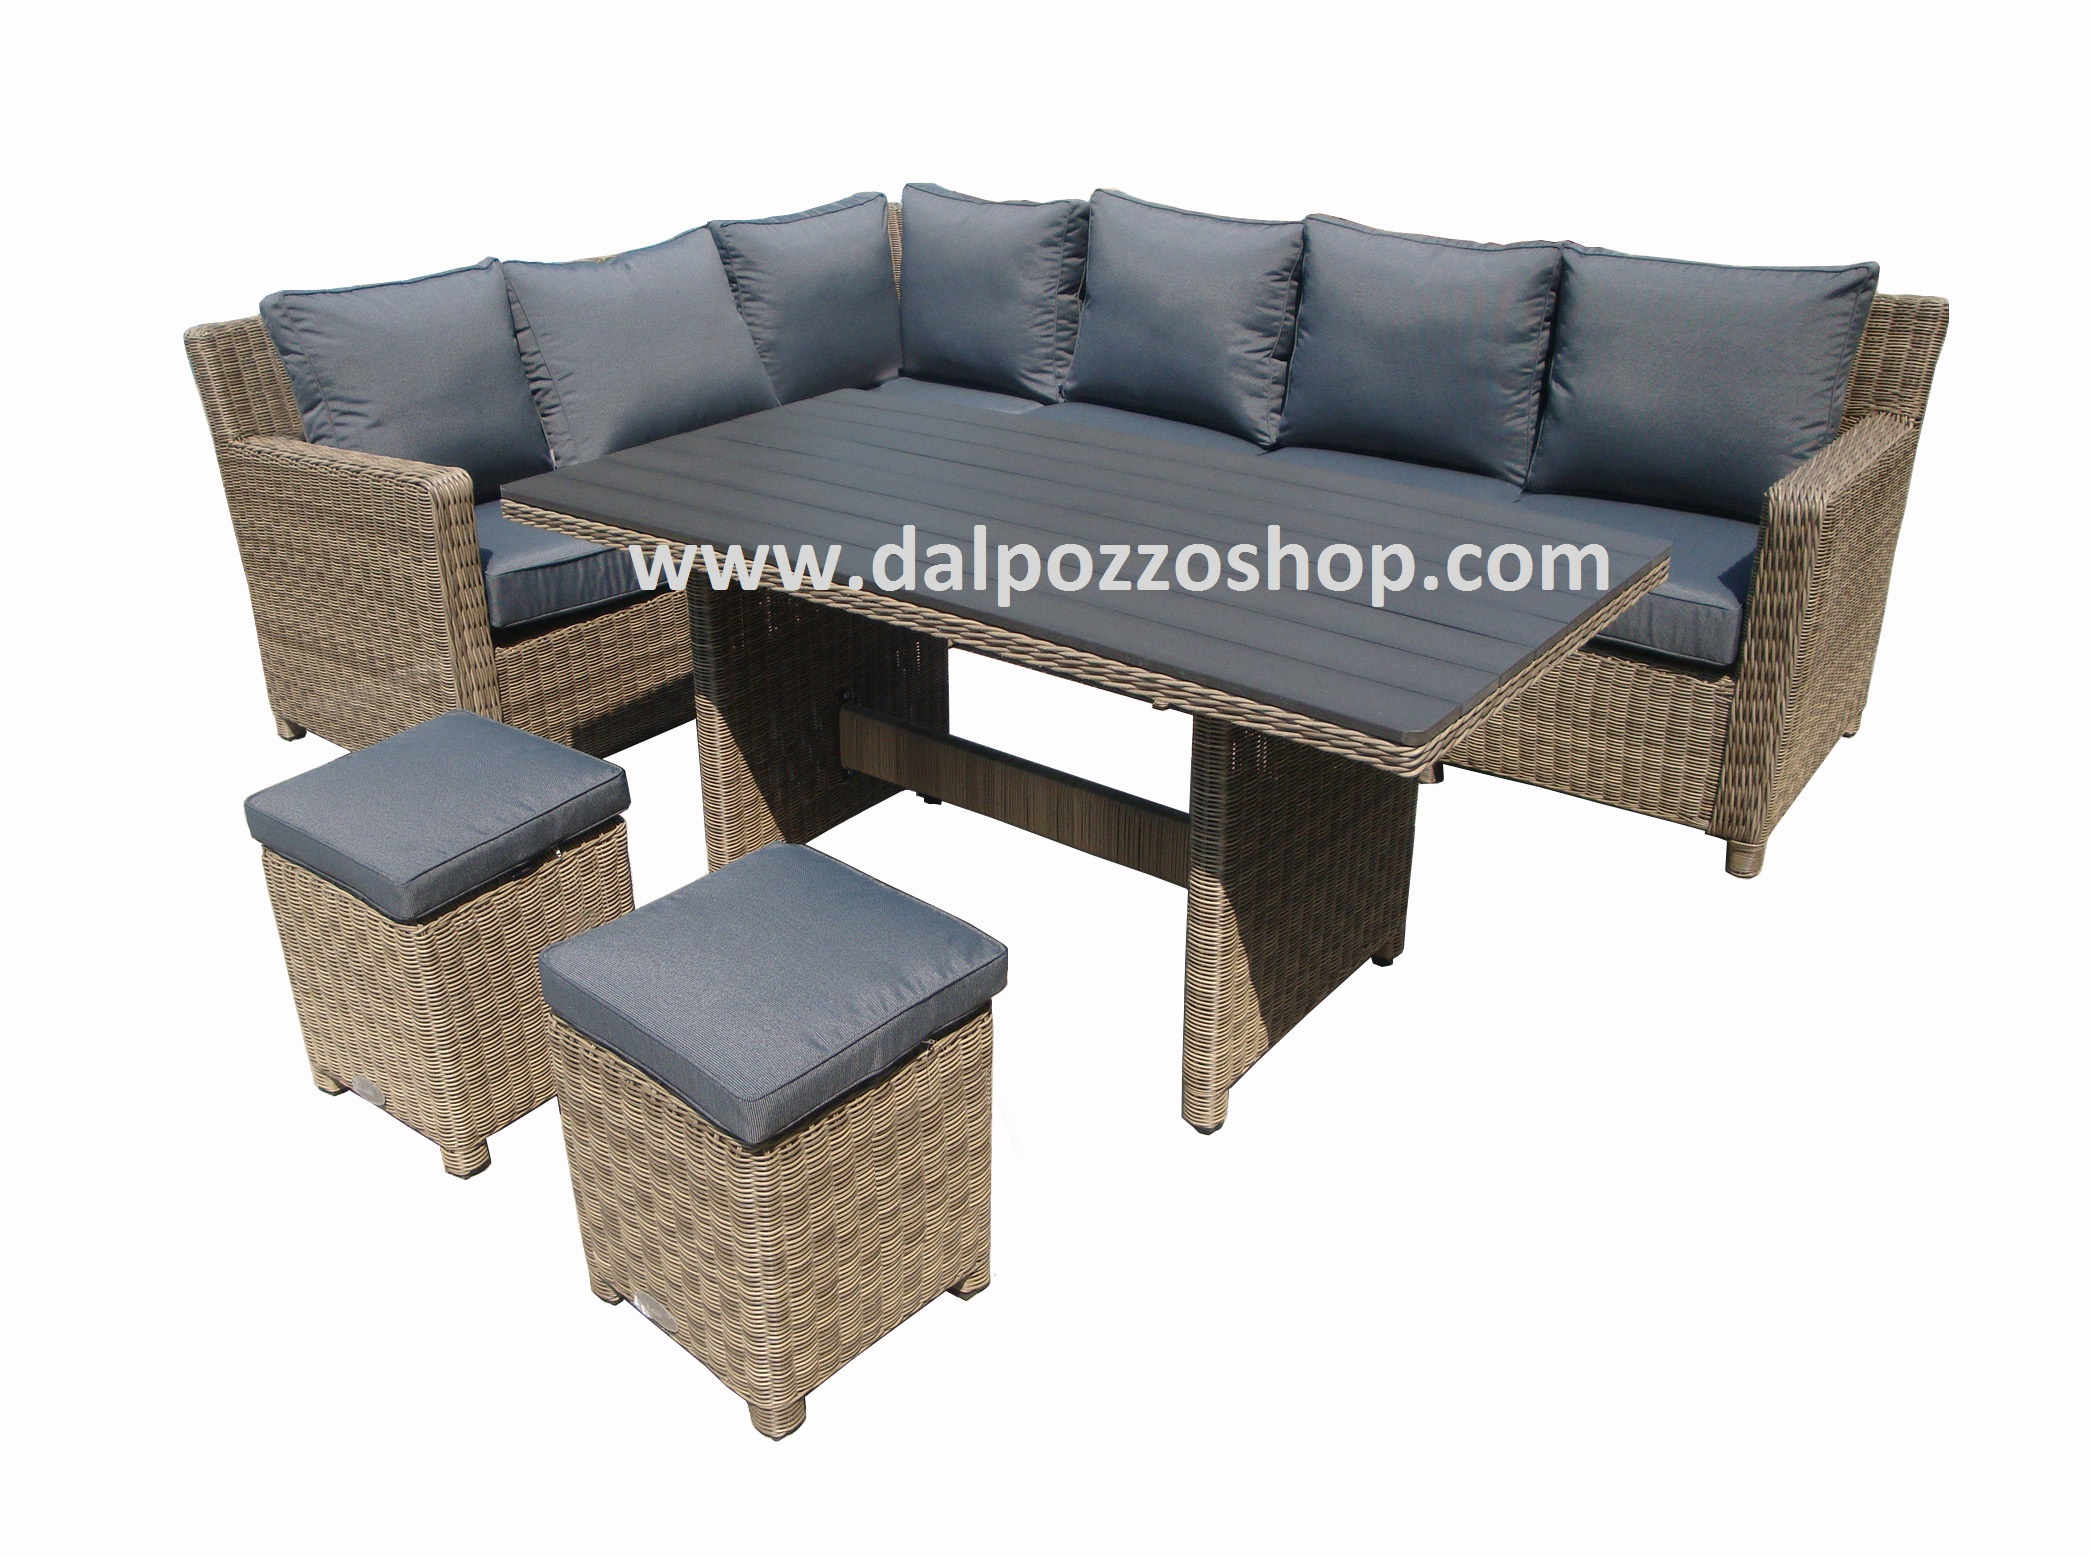 Salotti In Wicker.Dal Pozzo Andrea Shop In Line Baskets Rattan Furniture